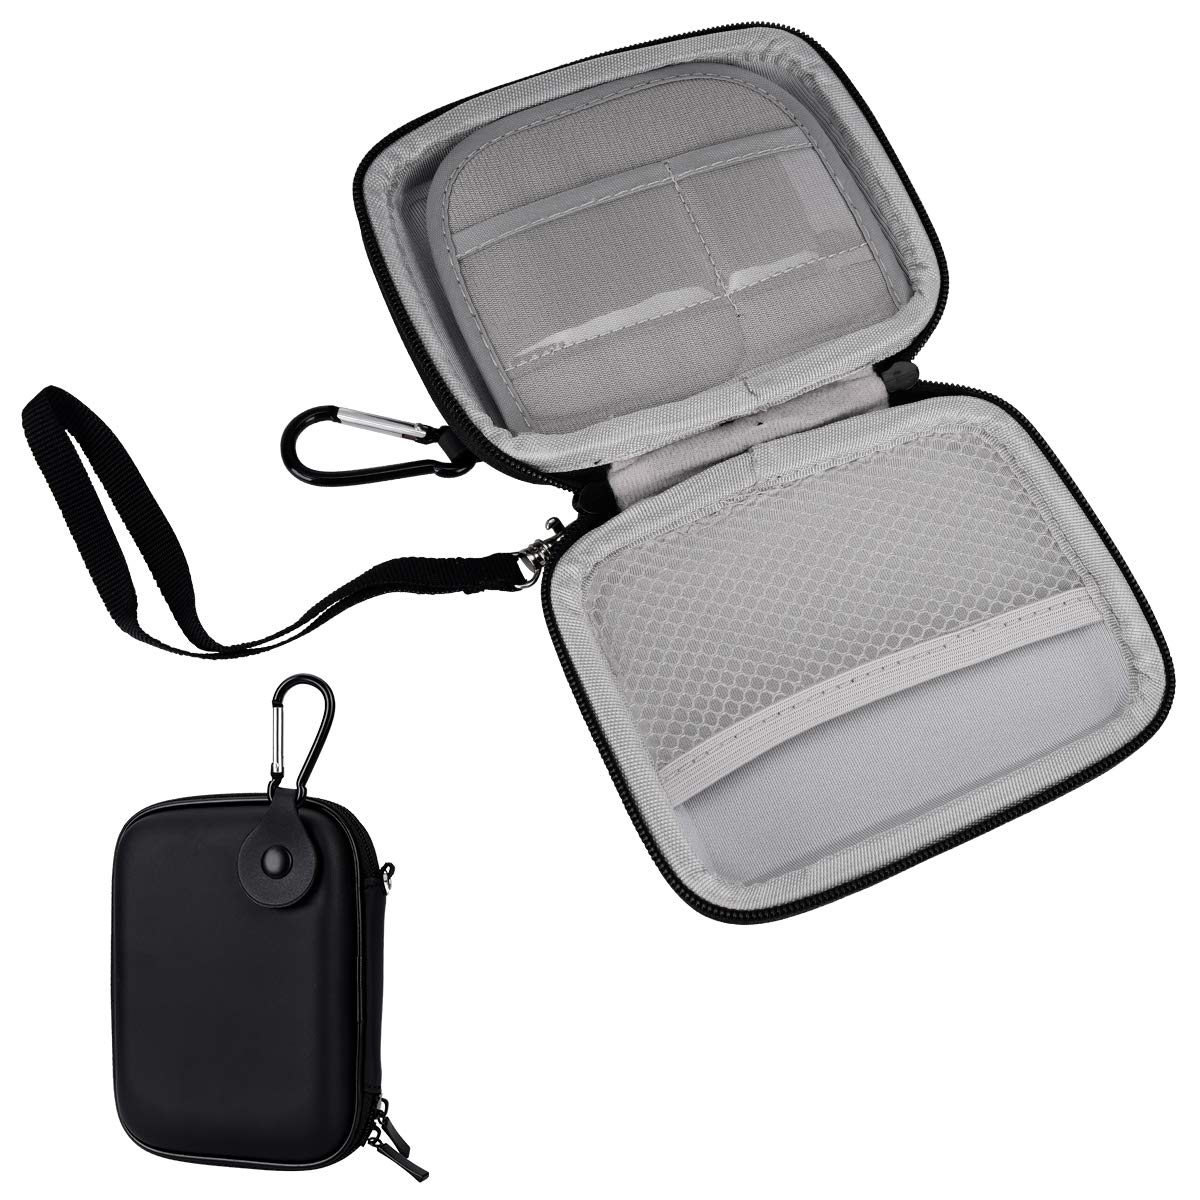 YoungRich Portable Mini Hard EVA Carrying Case Small Travel Storage Bag with Carabiner Strap Two Zippers Waterproof Holder for Power Bank Bluetooth Earphone Wired Headset Data Wire Black 14x11x3cm